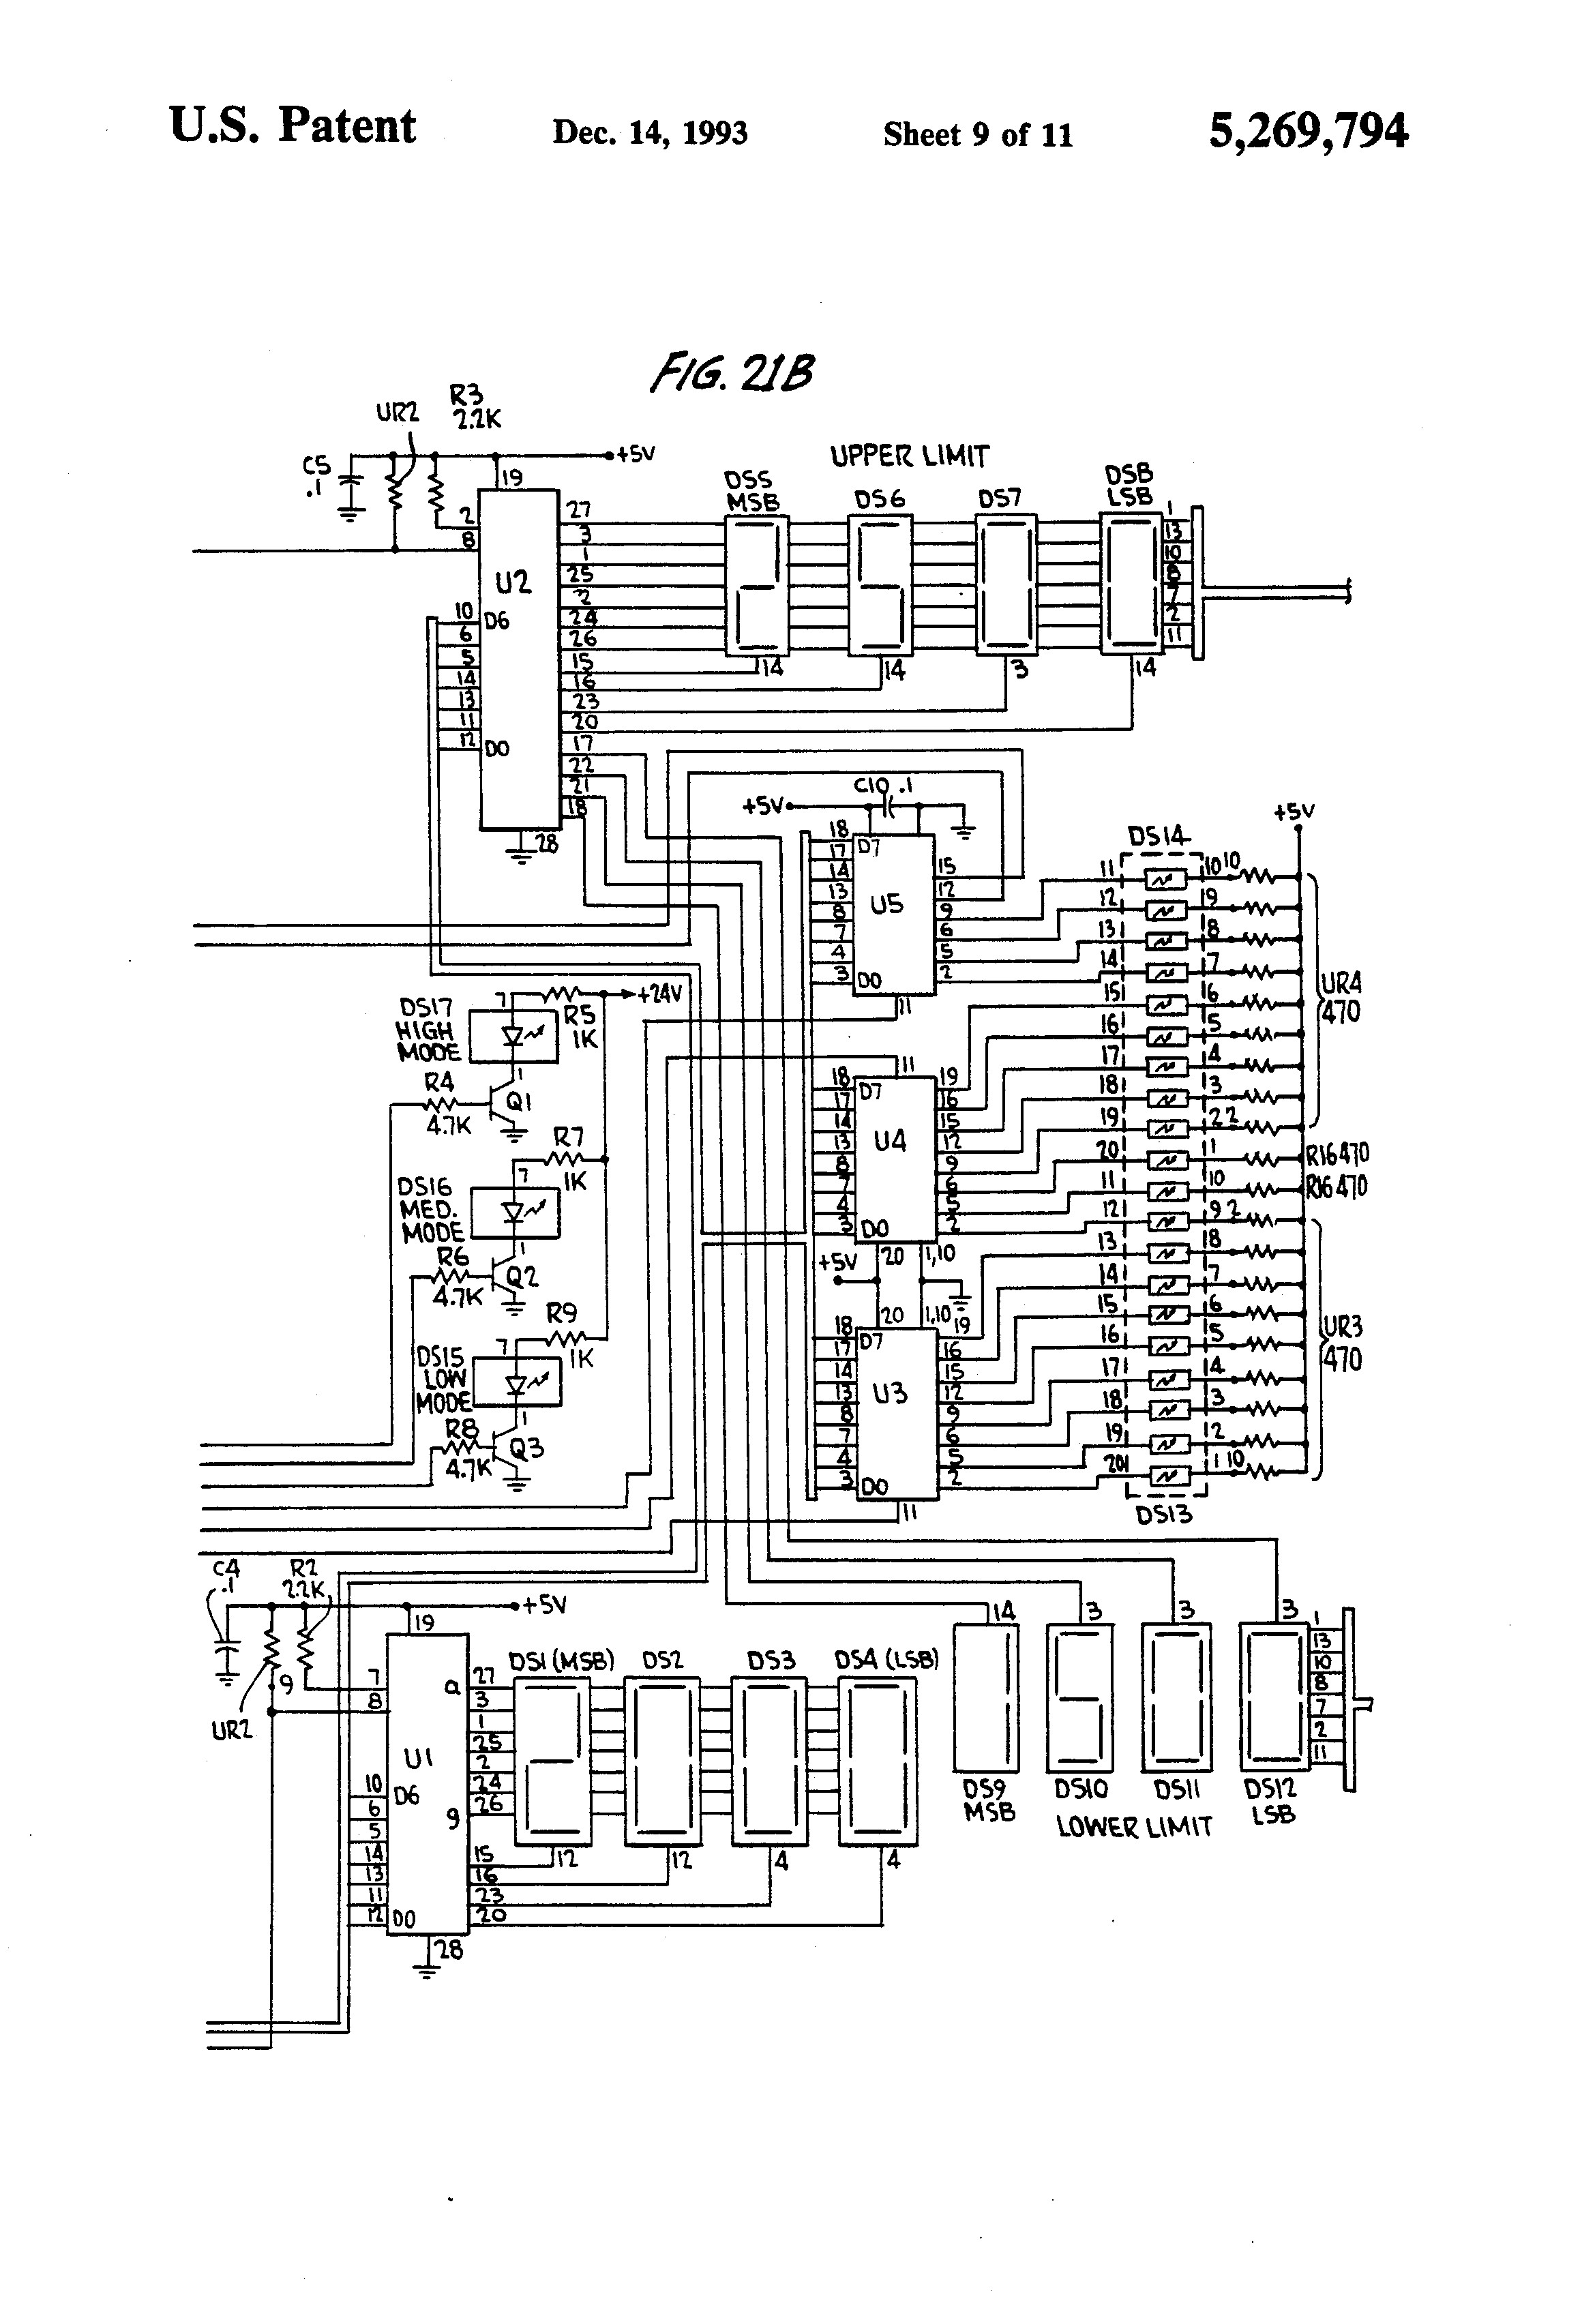 International 8500 Fuse Box Diagram Fuse Box Diagram 1999 International 9370 Robertson Ballast Of International 8500 Fuse Box Diagram